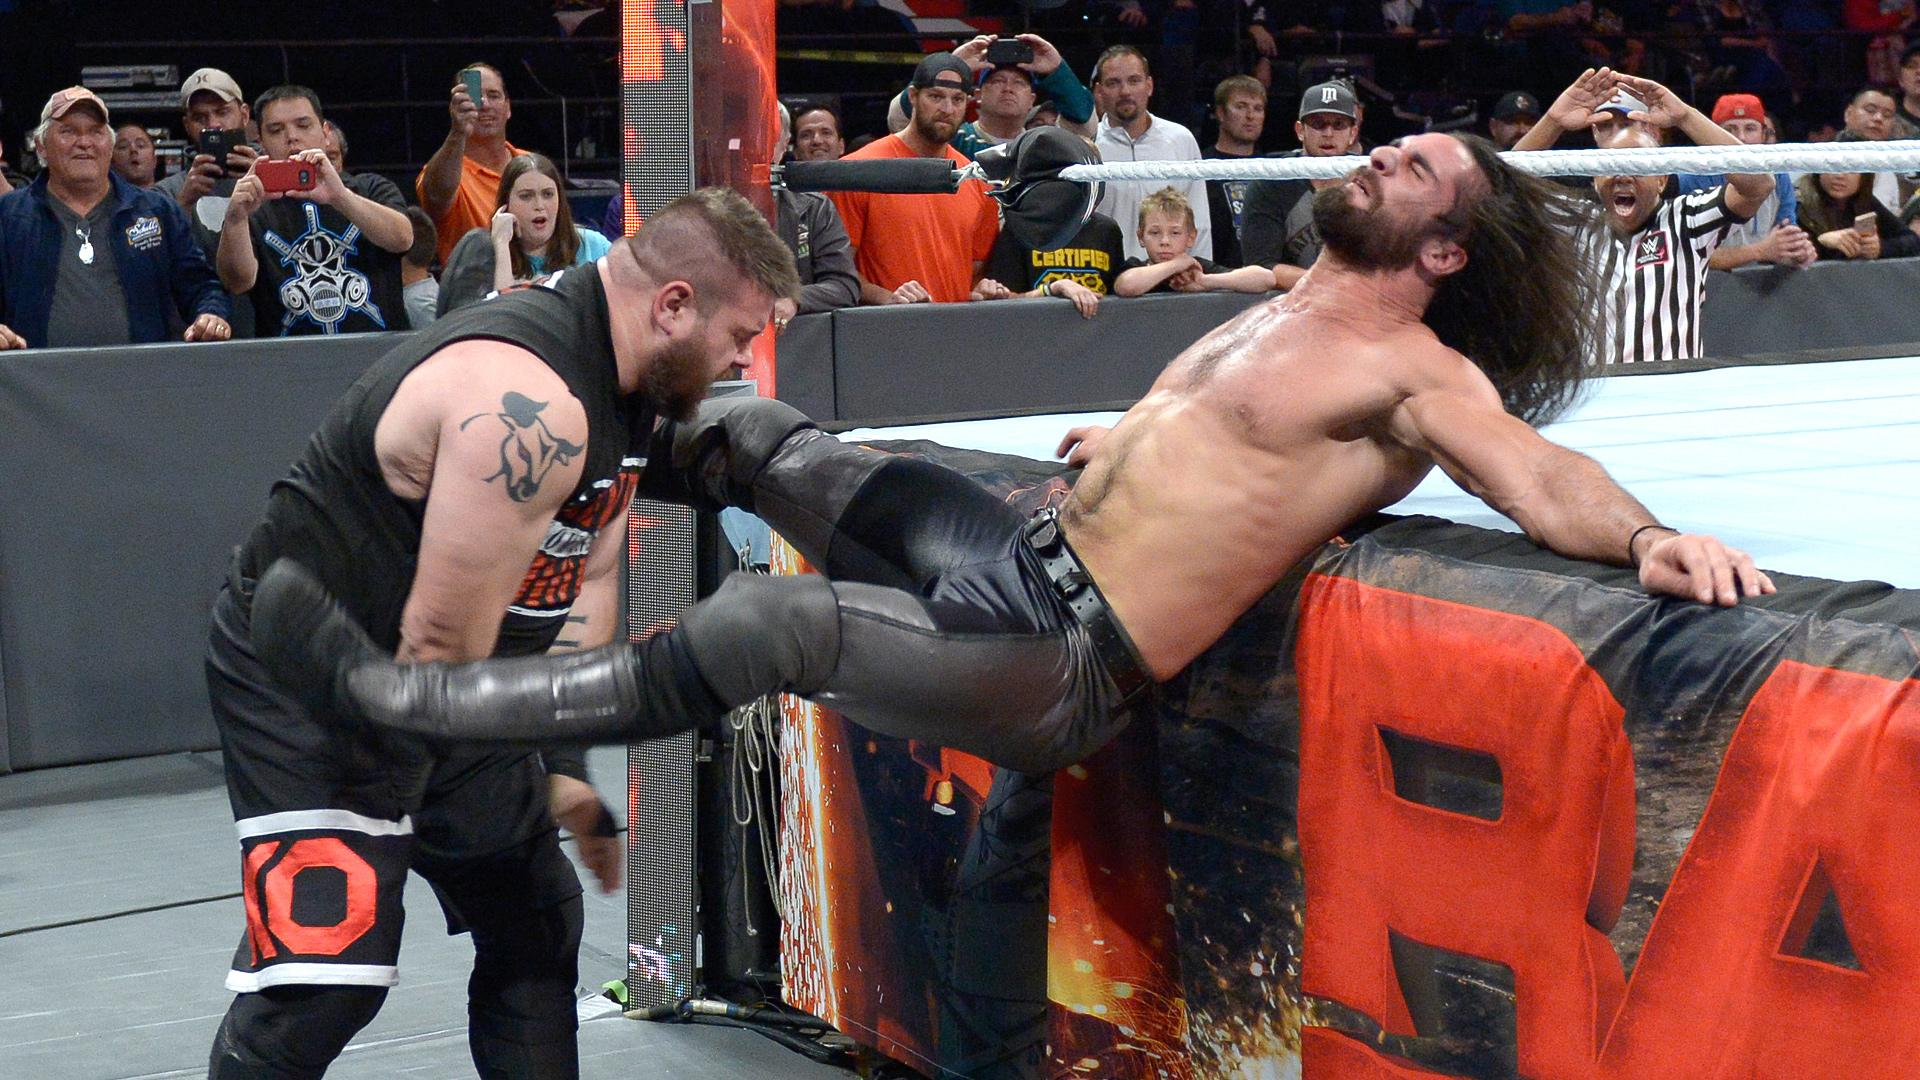 RAW 24/10/16: aperitivo de Hell in a Cell